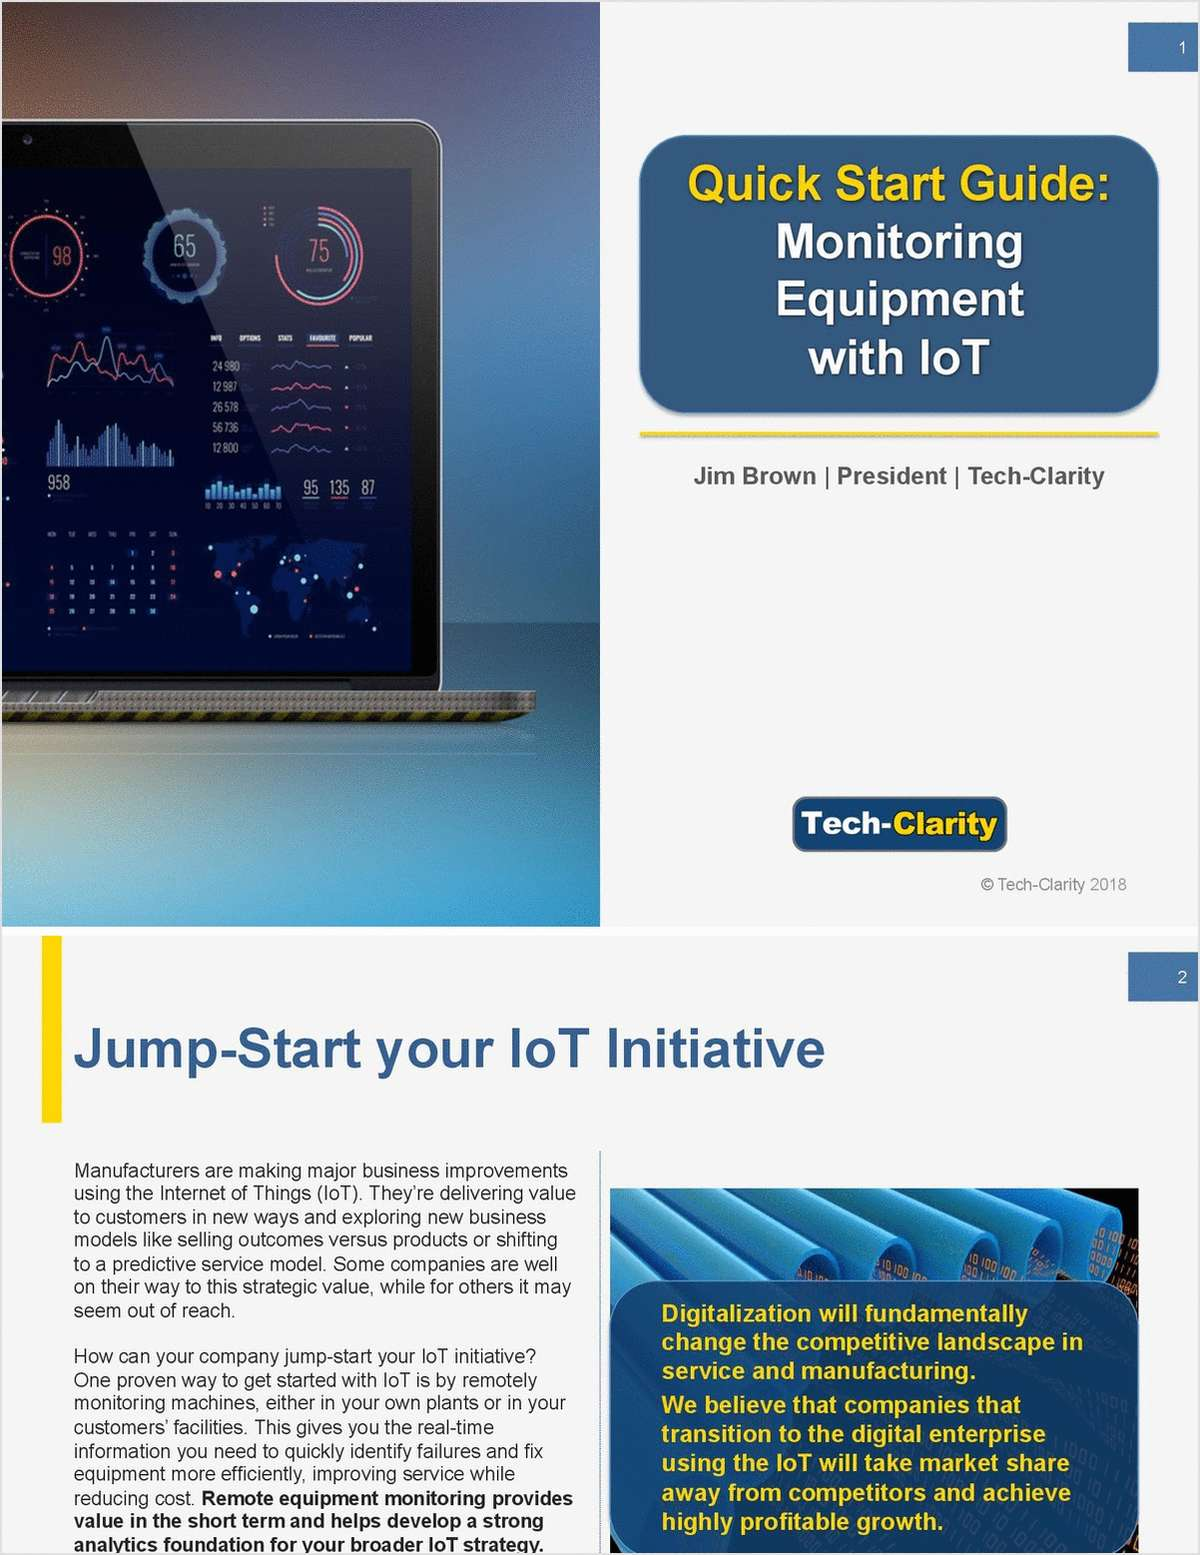 Quick Start Guide: Monitoring Equipment with IoT